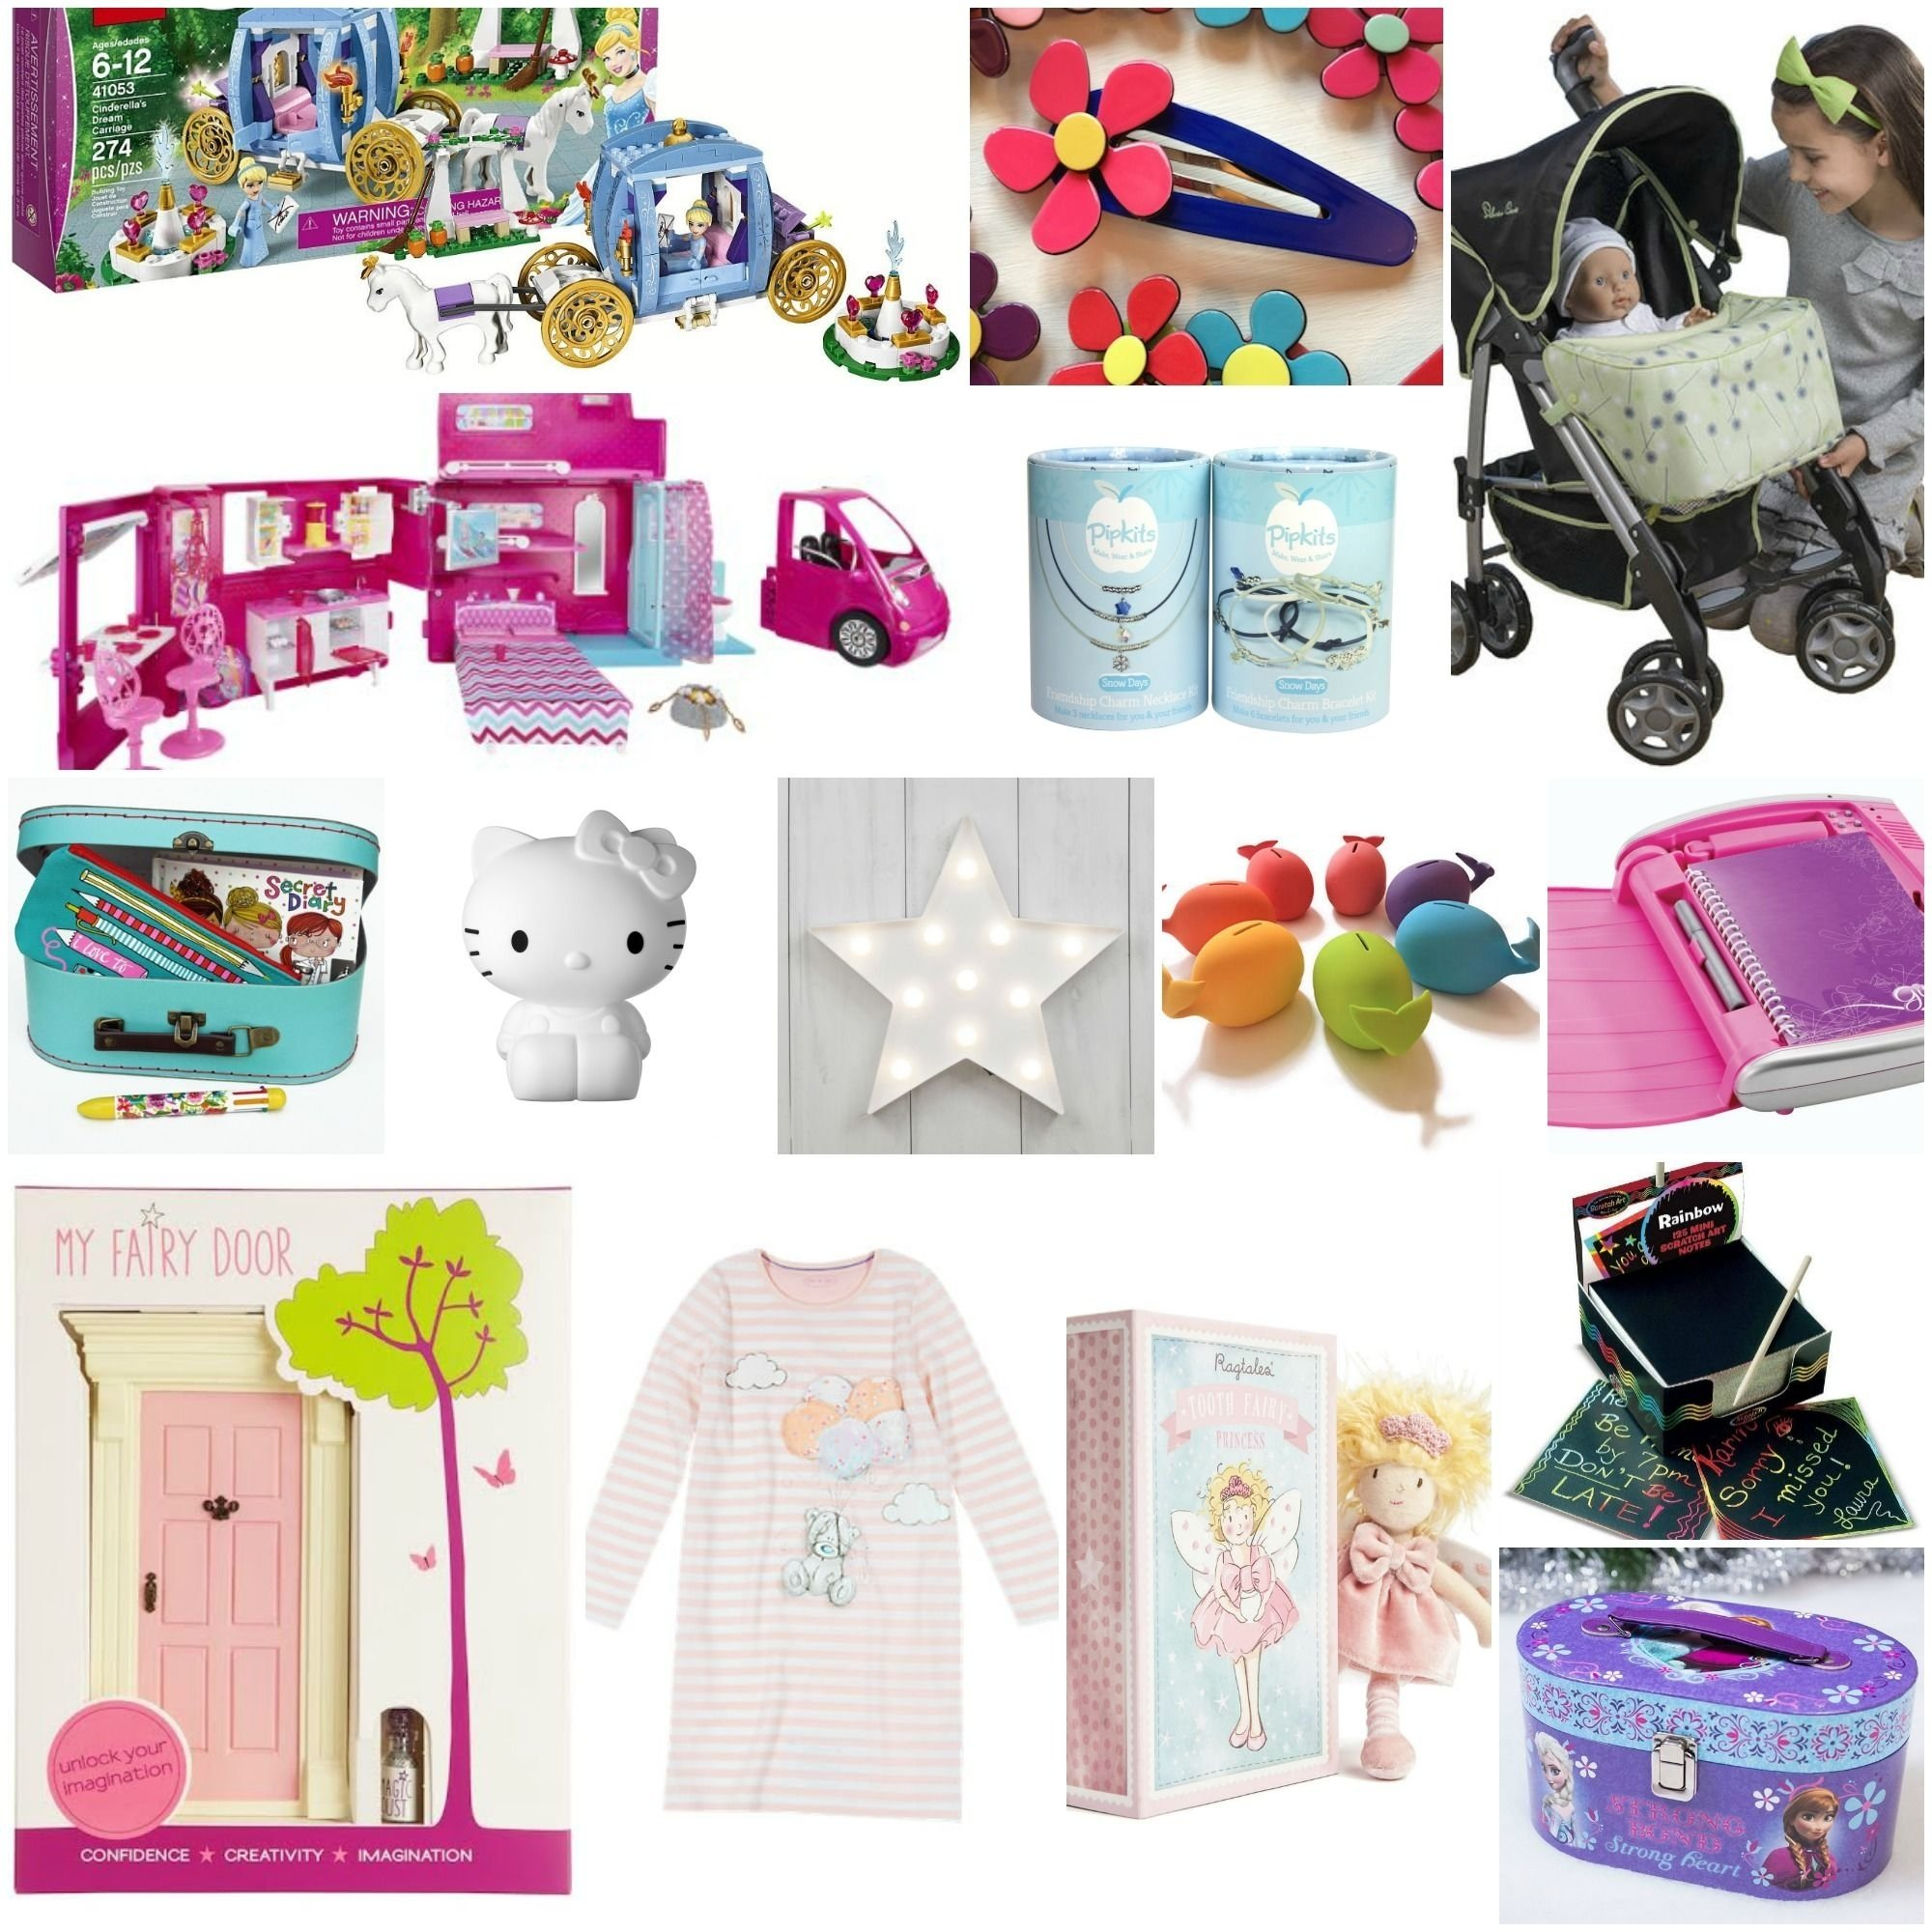 10 Great Gift Ideas For Girls Age 6 gift ideas for girls age 6 need some inspiration for a little lady 1 2020